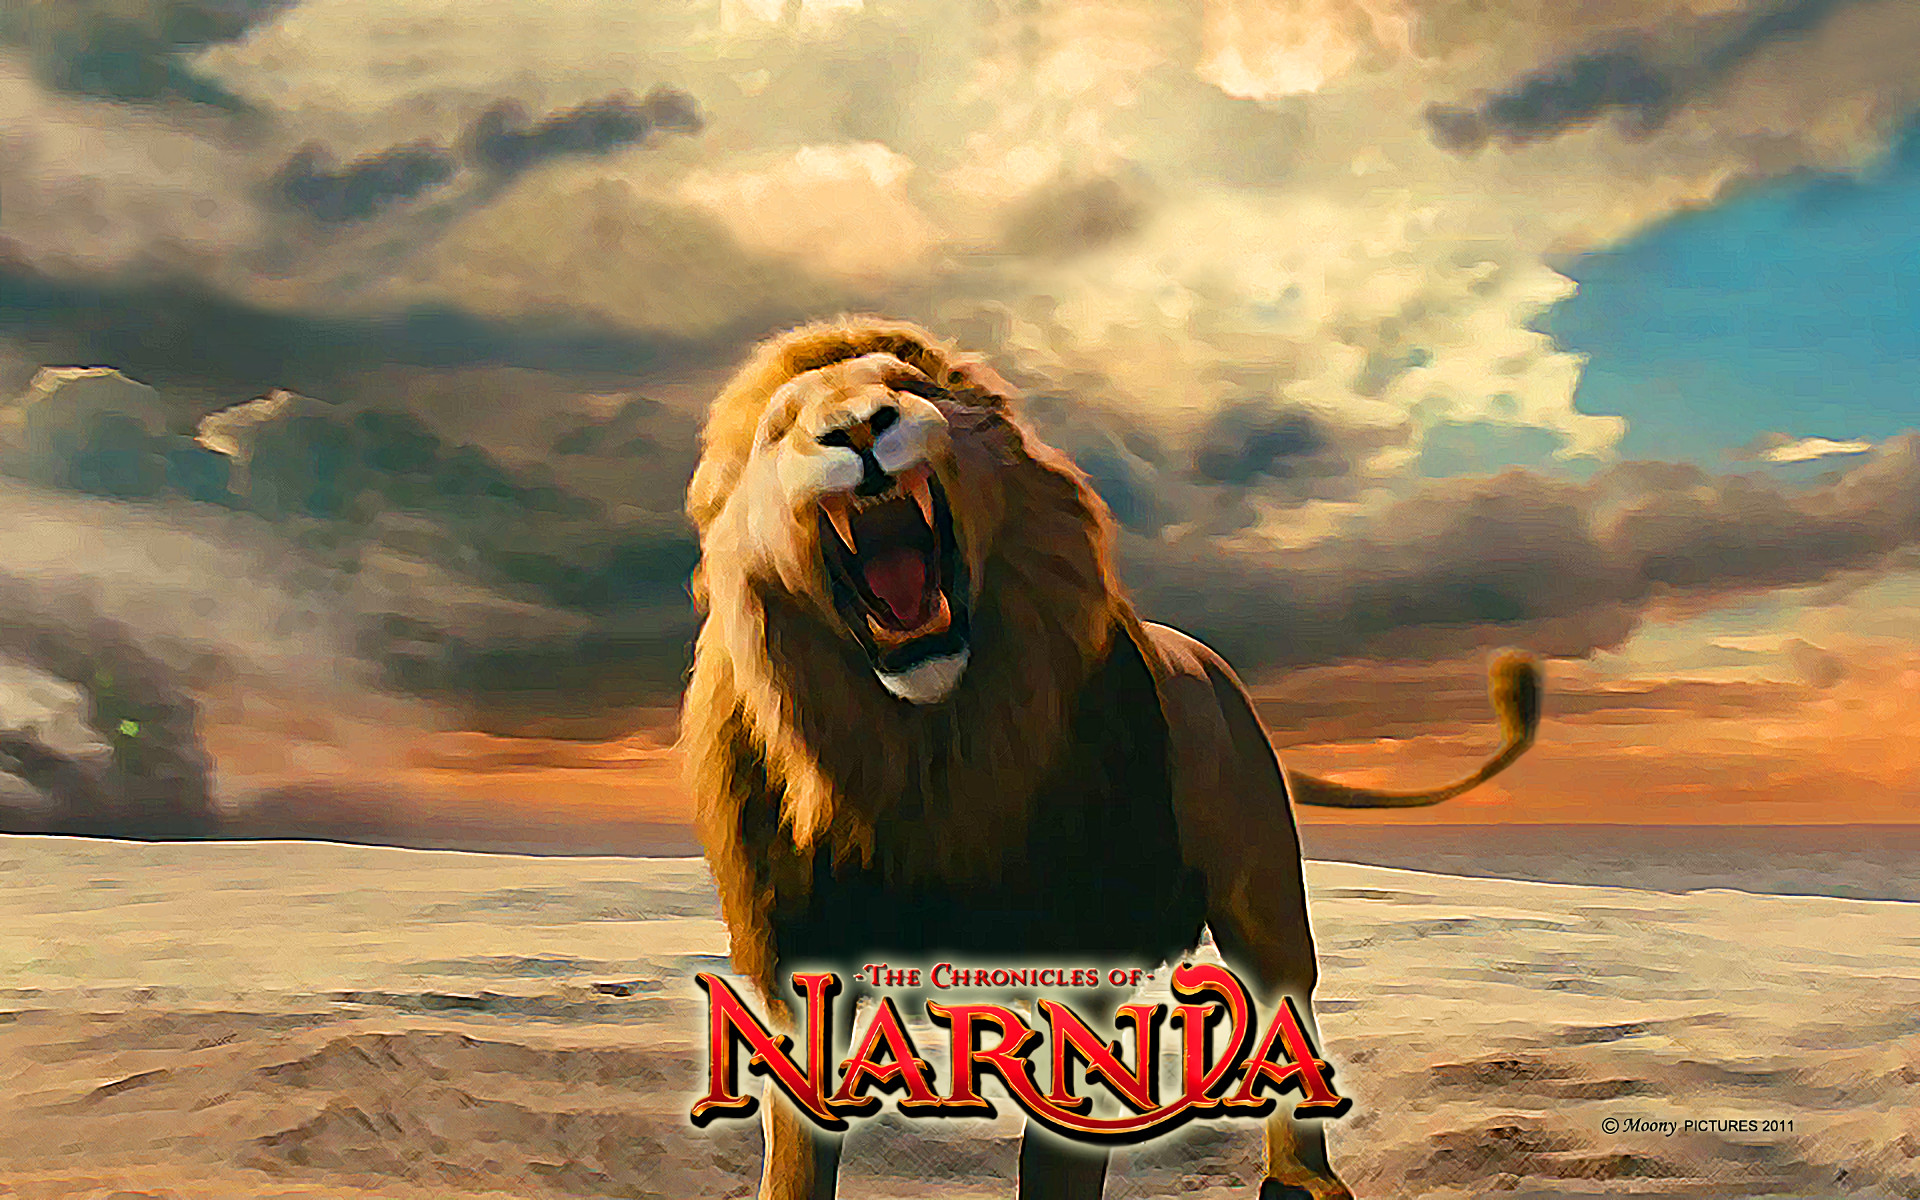 Narnia Aslan Wallpaper (68  images) for Narnia Aslan Wallpaper  131fsj